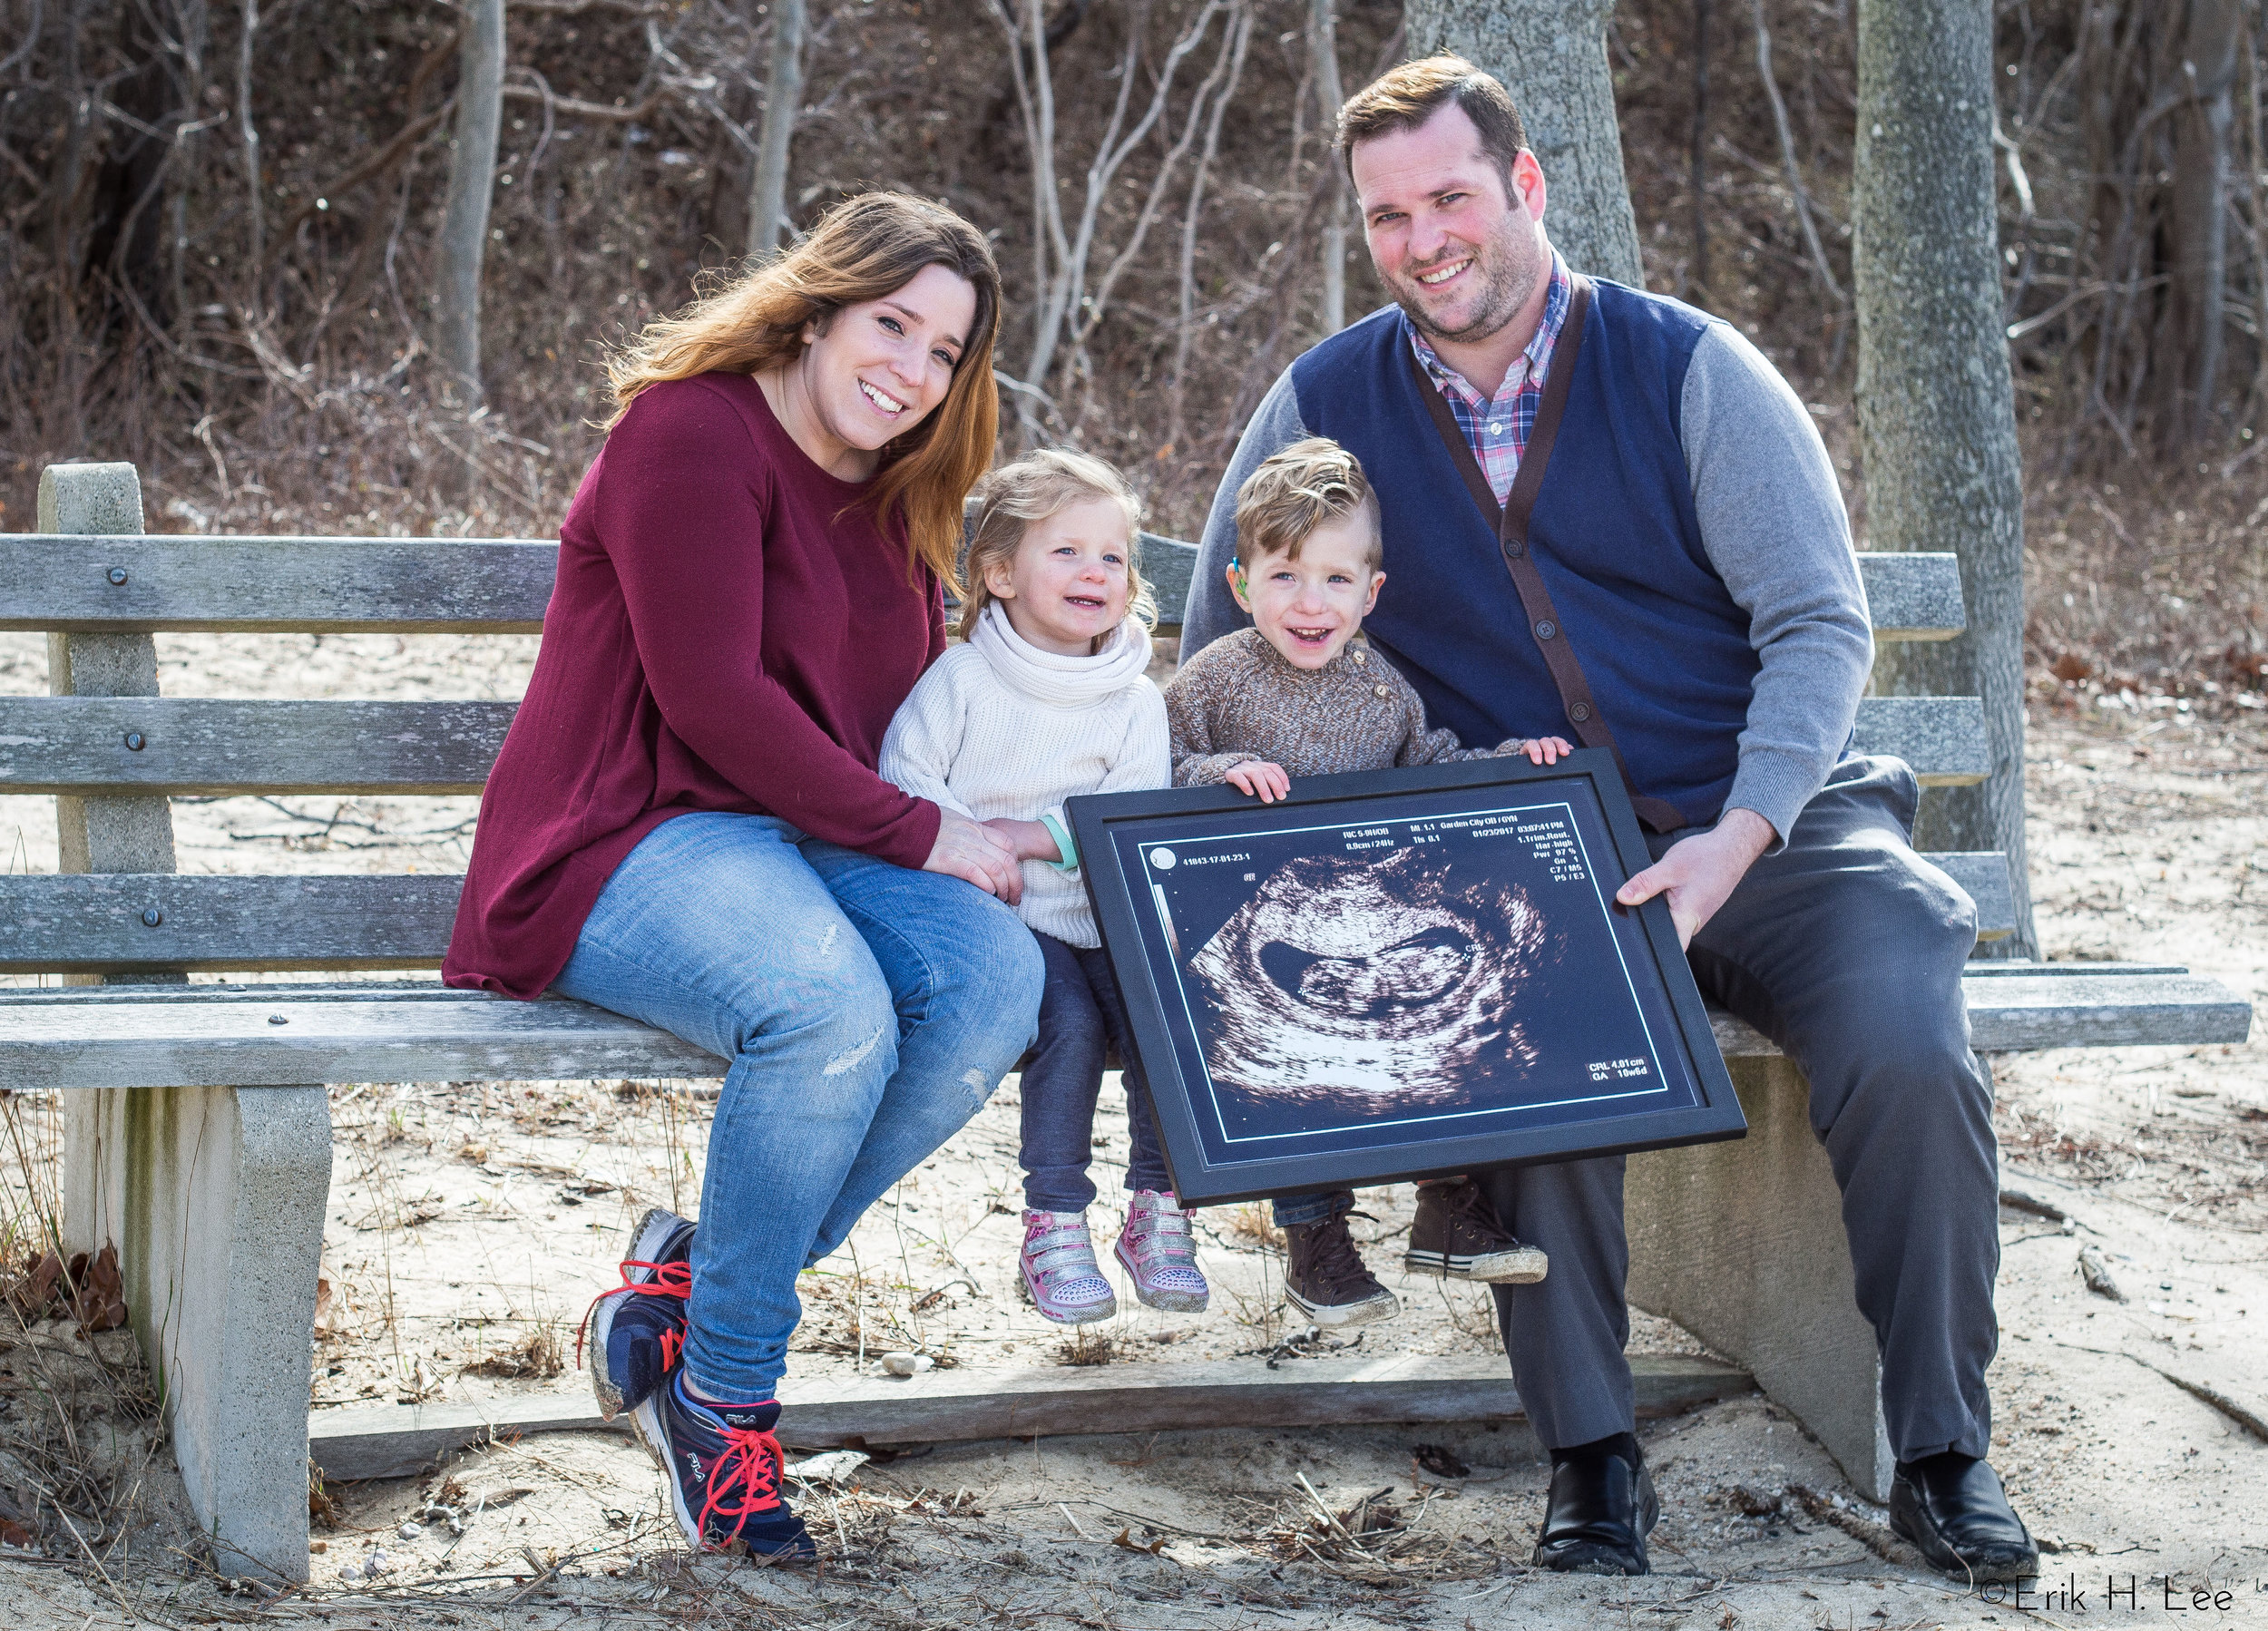 Gianetta Family - Pregnancy Announcement  I am very close with this family. So close in fact that their second child is actually my god-daughter. So it came as no surprise (well maybe to them) when they asked me to photograph something a little unique to announce to the world that baby number three was on the way! We had the idea to take the sonogram and have it blown up big and have the kids hold it up on that really cold February afternoon.